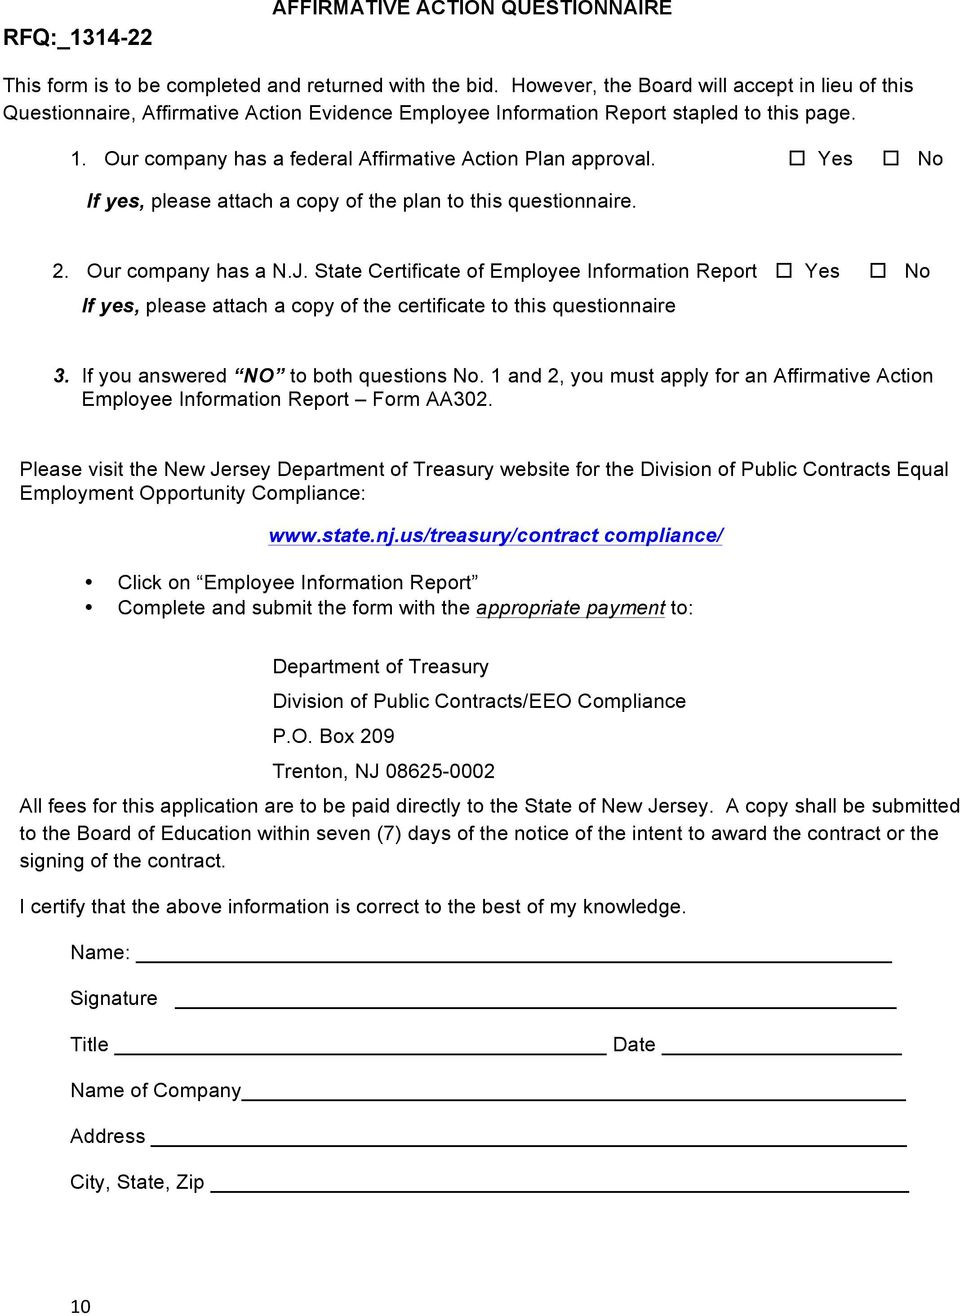 Our company has a federal Affirmative Action Plan approval.! Yes! No If yes, please attach a copy of the plan to this questionnaire. 2. Our company has a N.J.